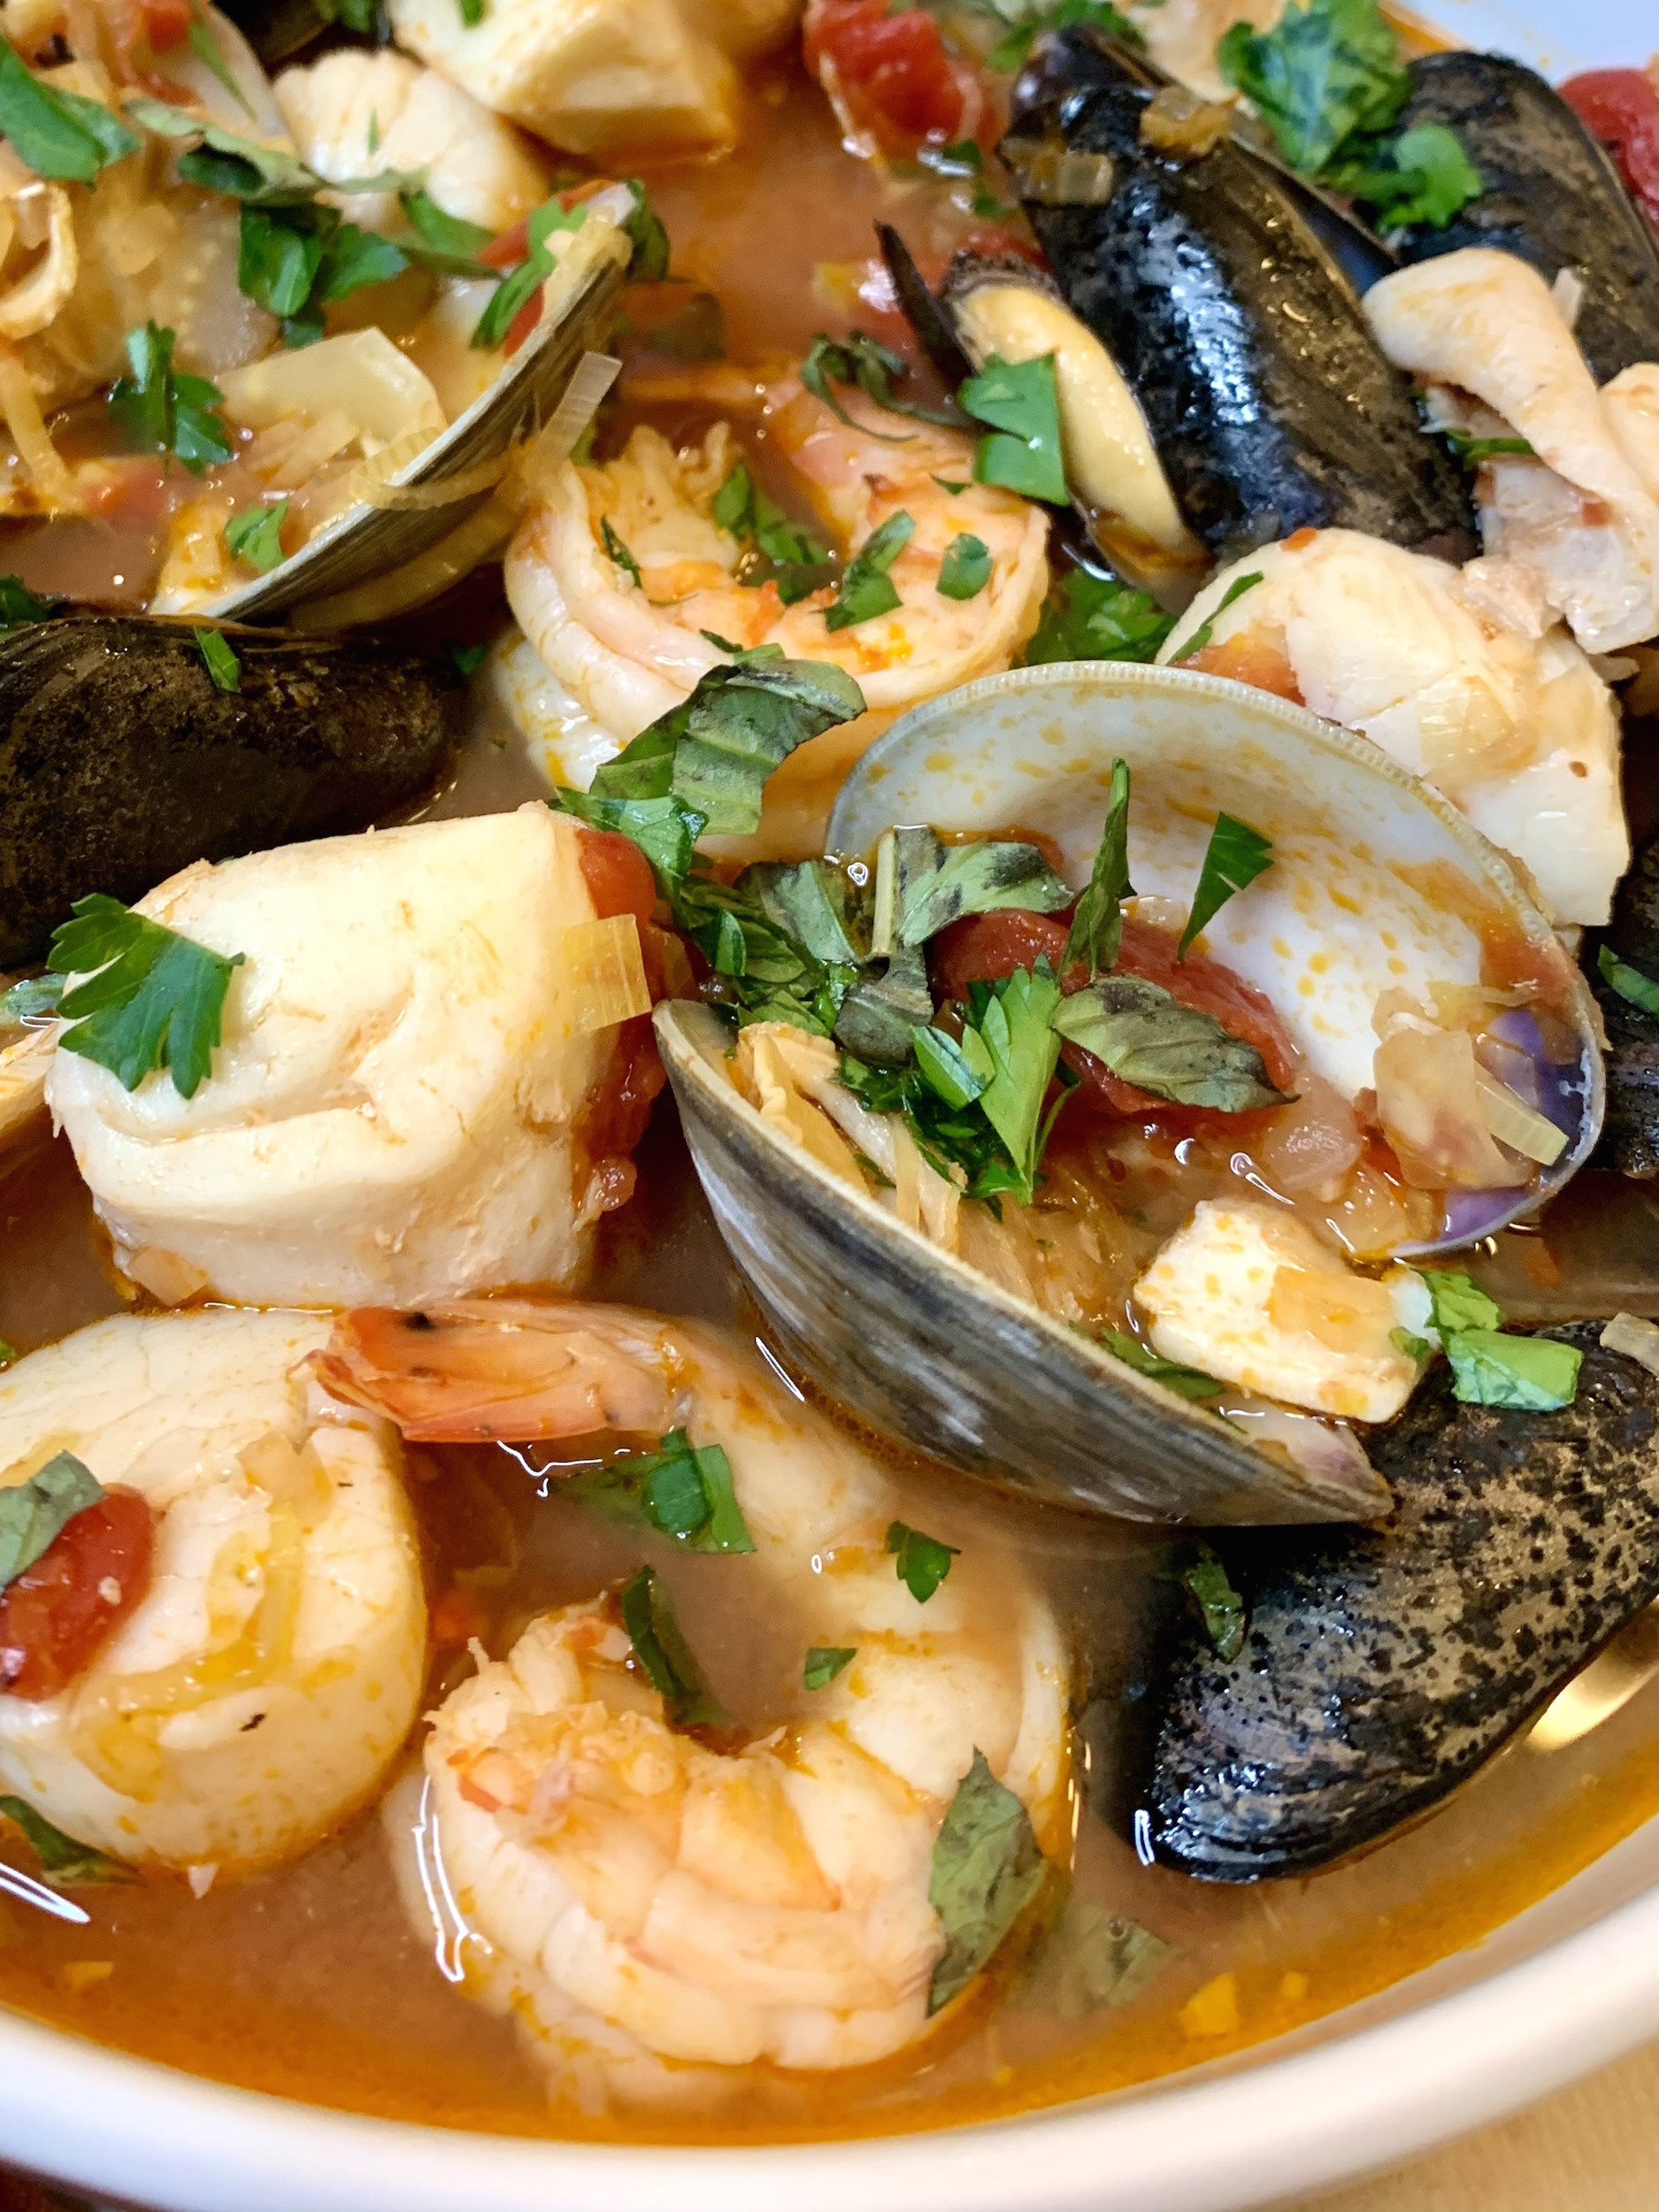 Close up of cioppino - clams, scallop shrimp, fish and mussels in a tomato broth garnished with fresh parsley